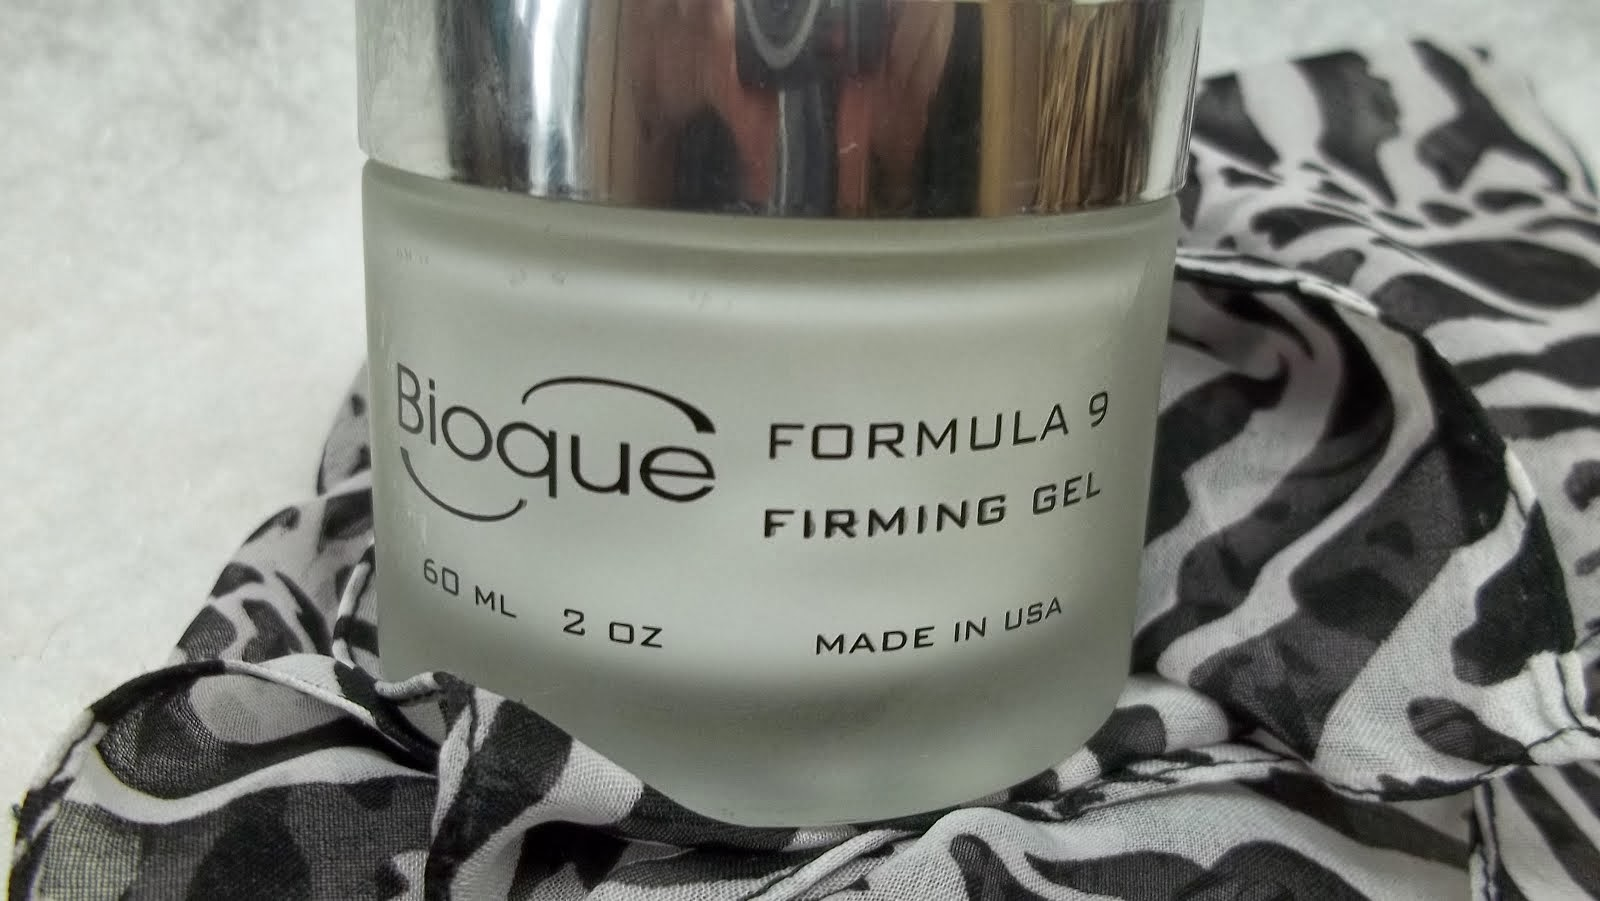 Formual 9 Firming Gel Giveaway-Ends Dec 7th